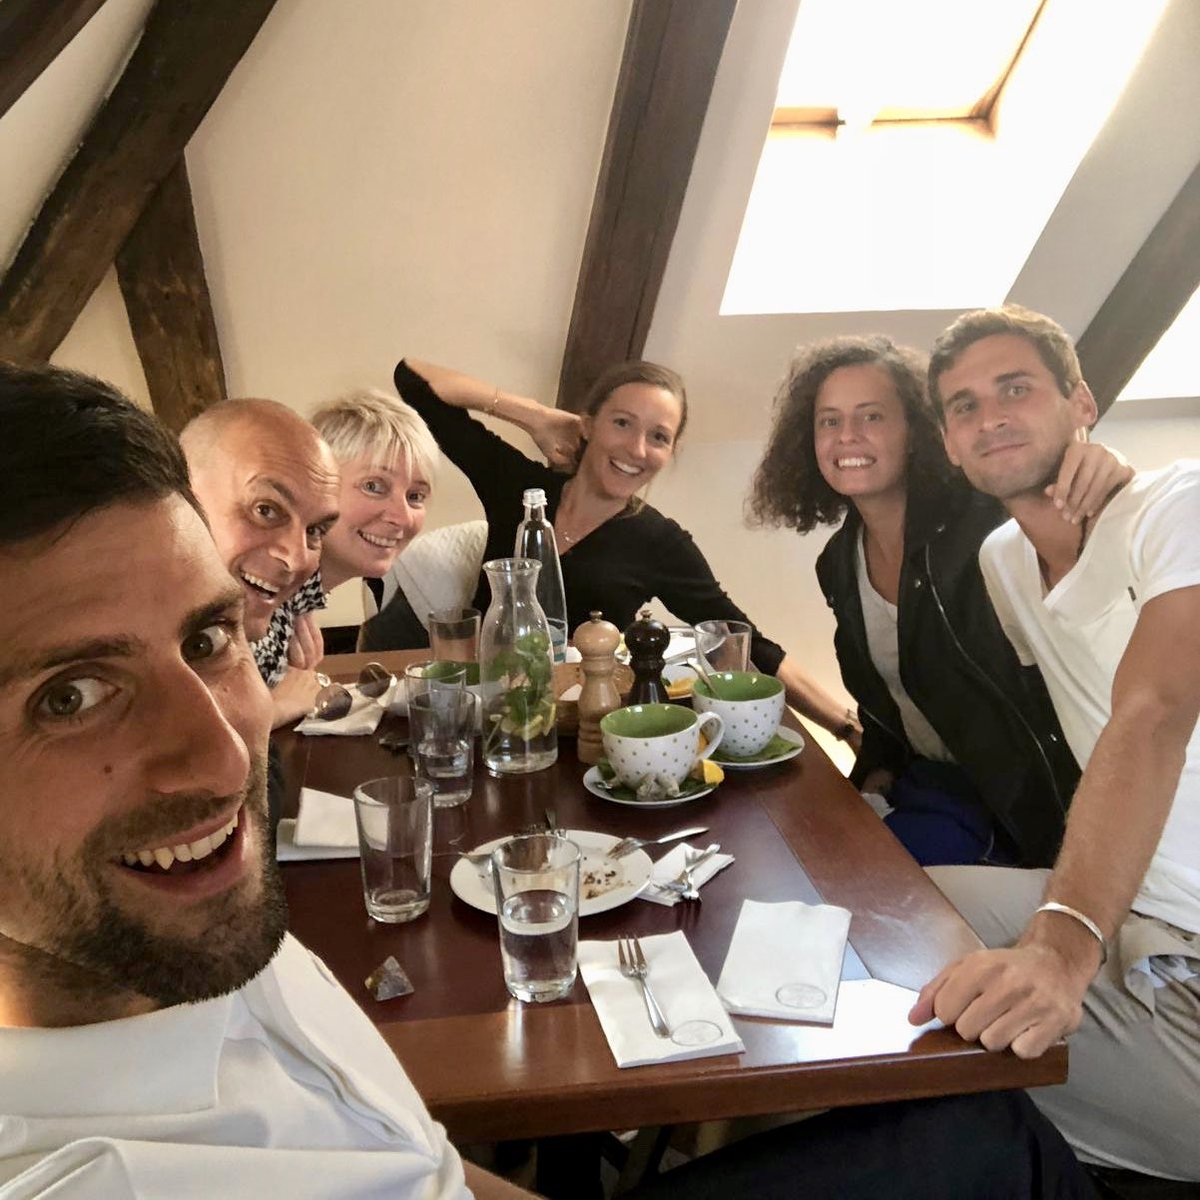 Aww you guys joined us a bit late 😜 All food disappeared 💁🏻♂️😂   Thank you #Prague for great time! Happy to be together with #family ❤️ @jelenadjokovicndf